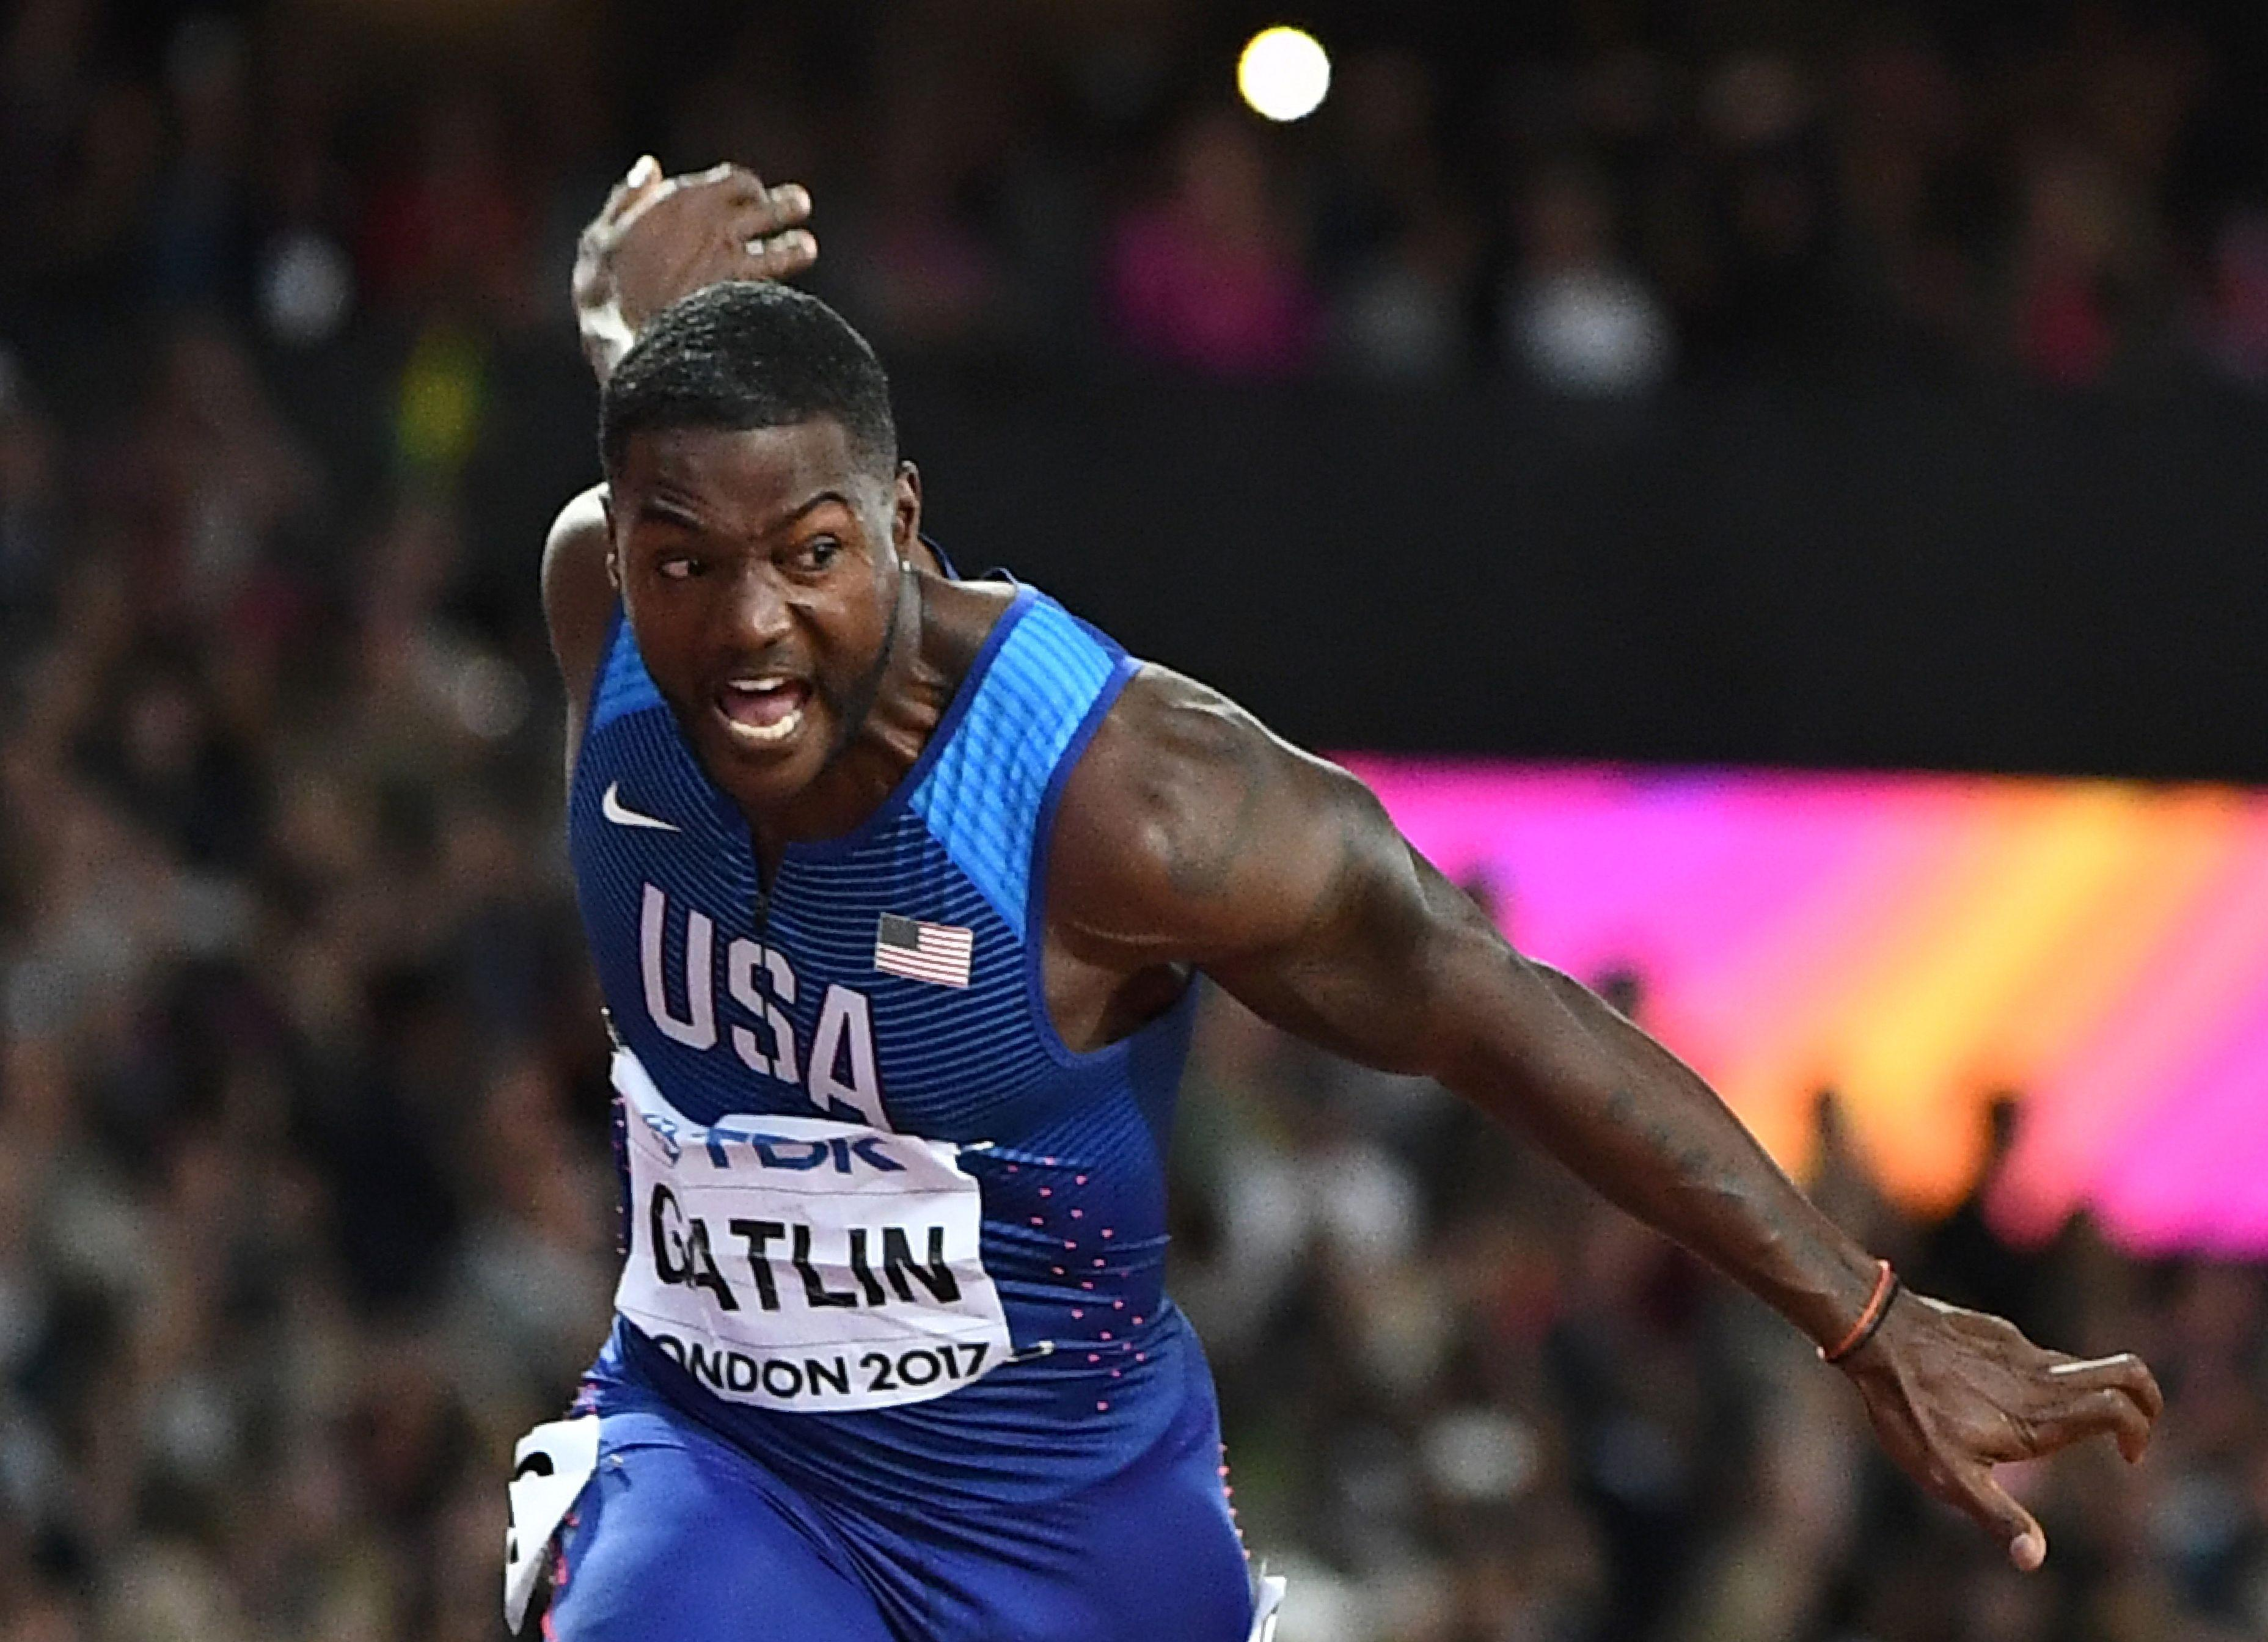 Justin Gatlin was the most unpopular 100m winner possible for the London Stadium crowd